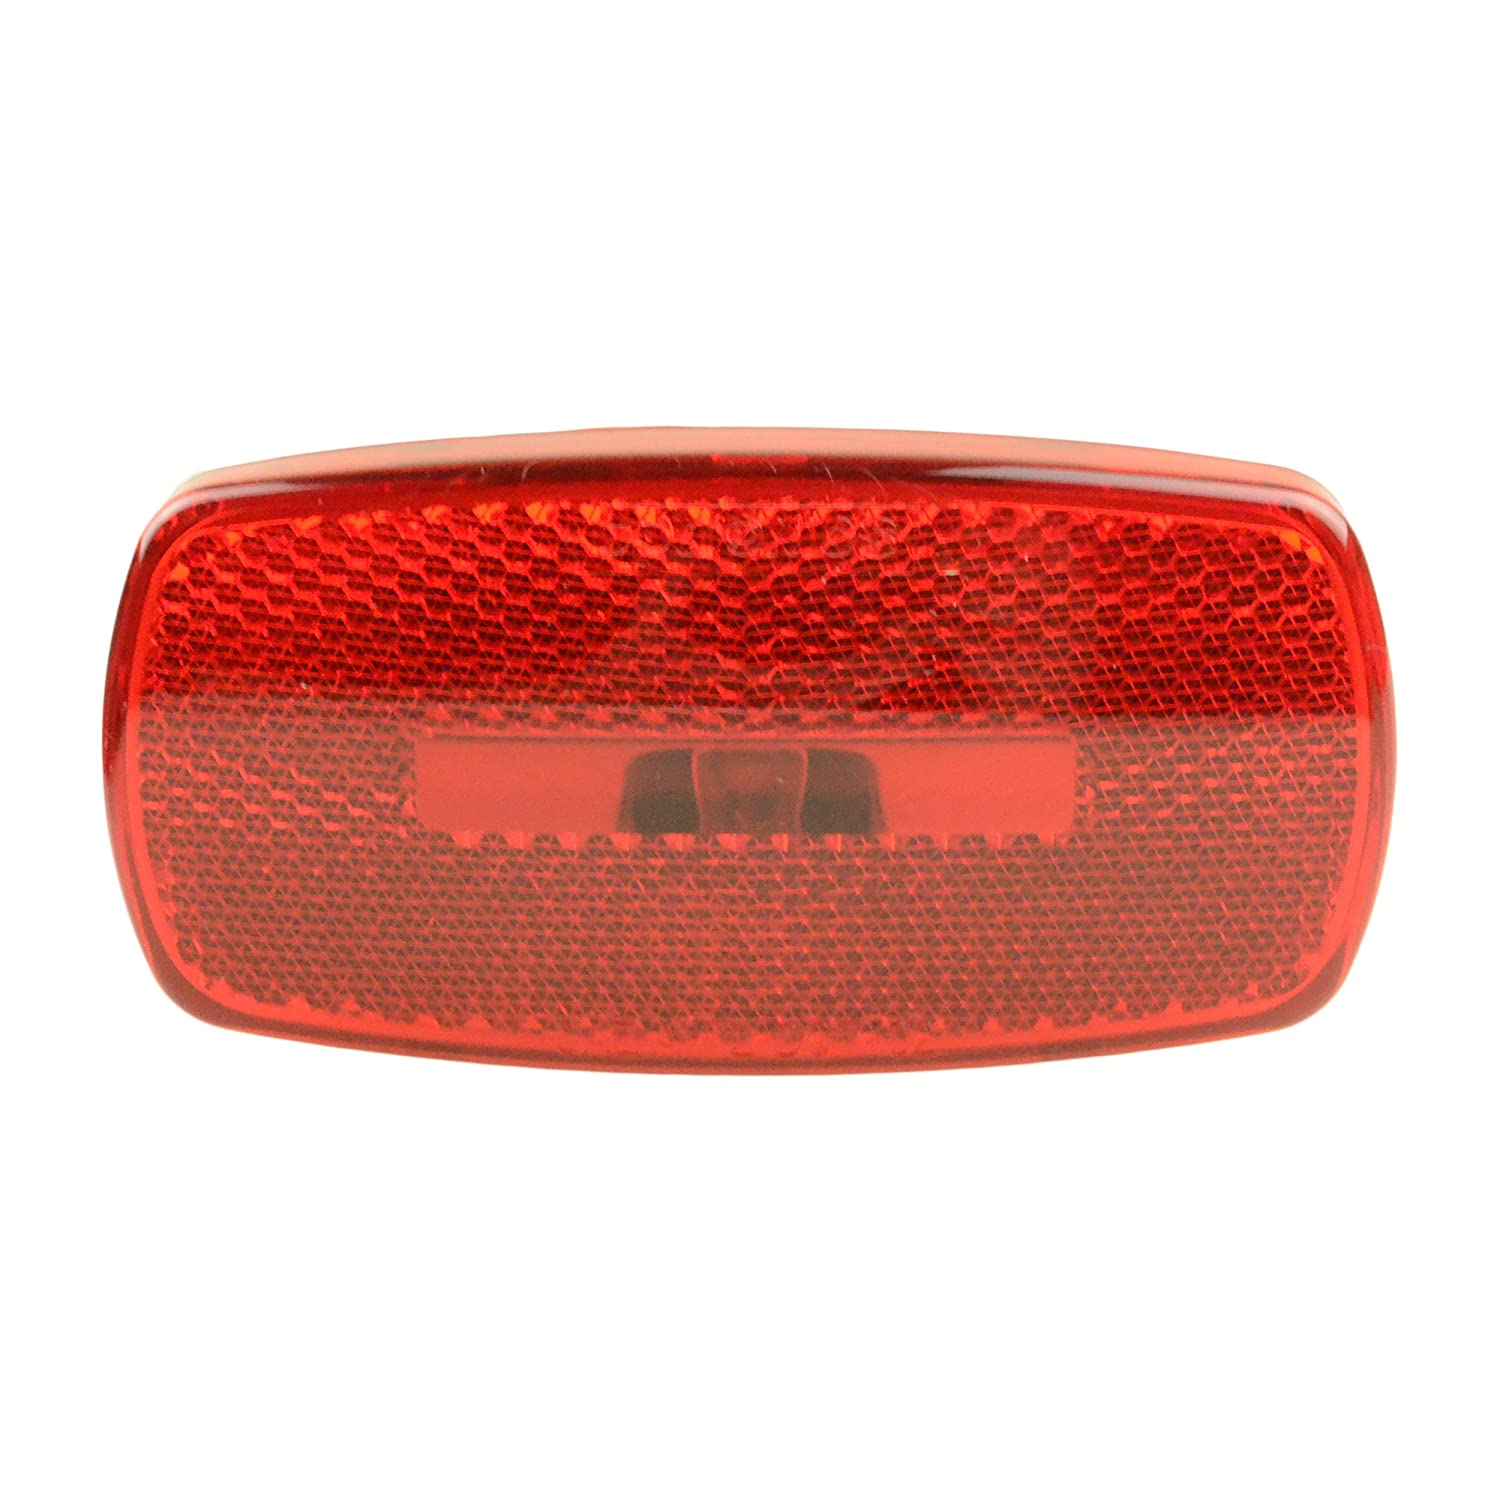 Optronics MC32RBP Side Marker Light - Red (1) 4333270957